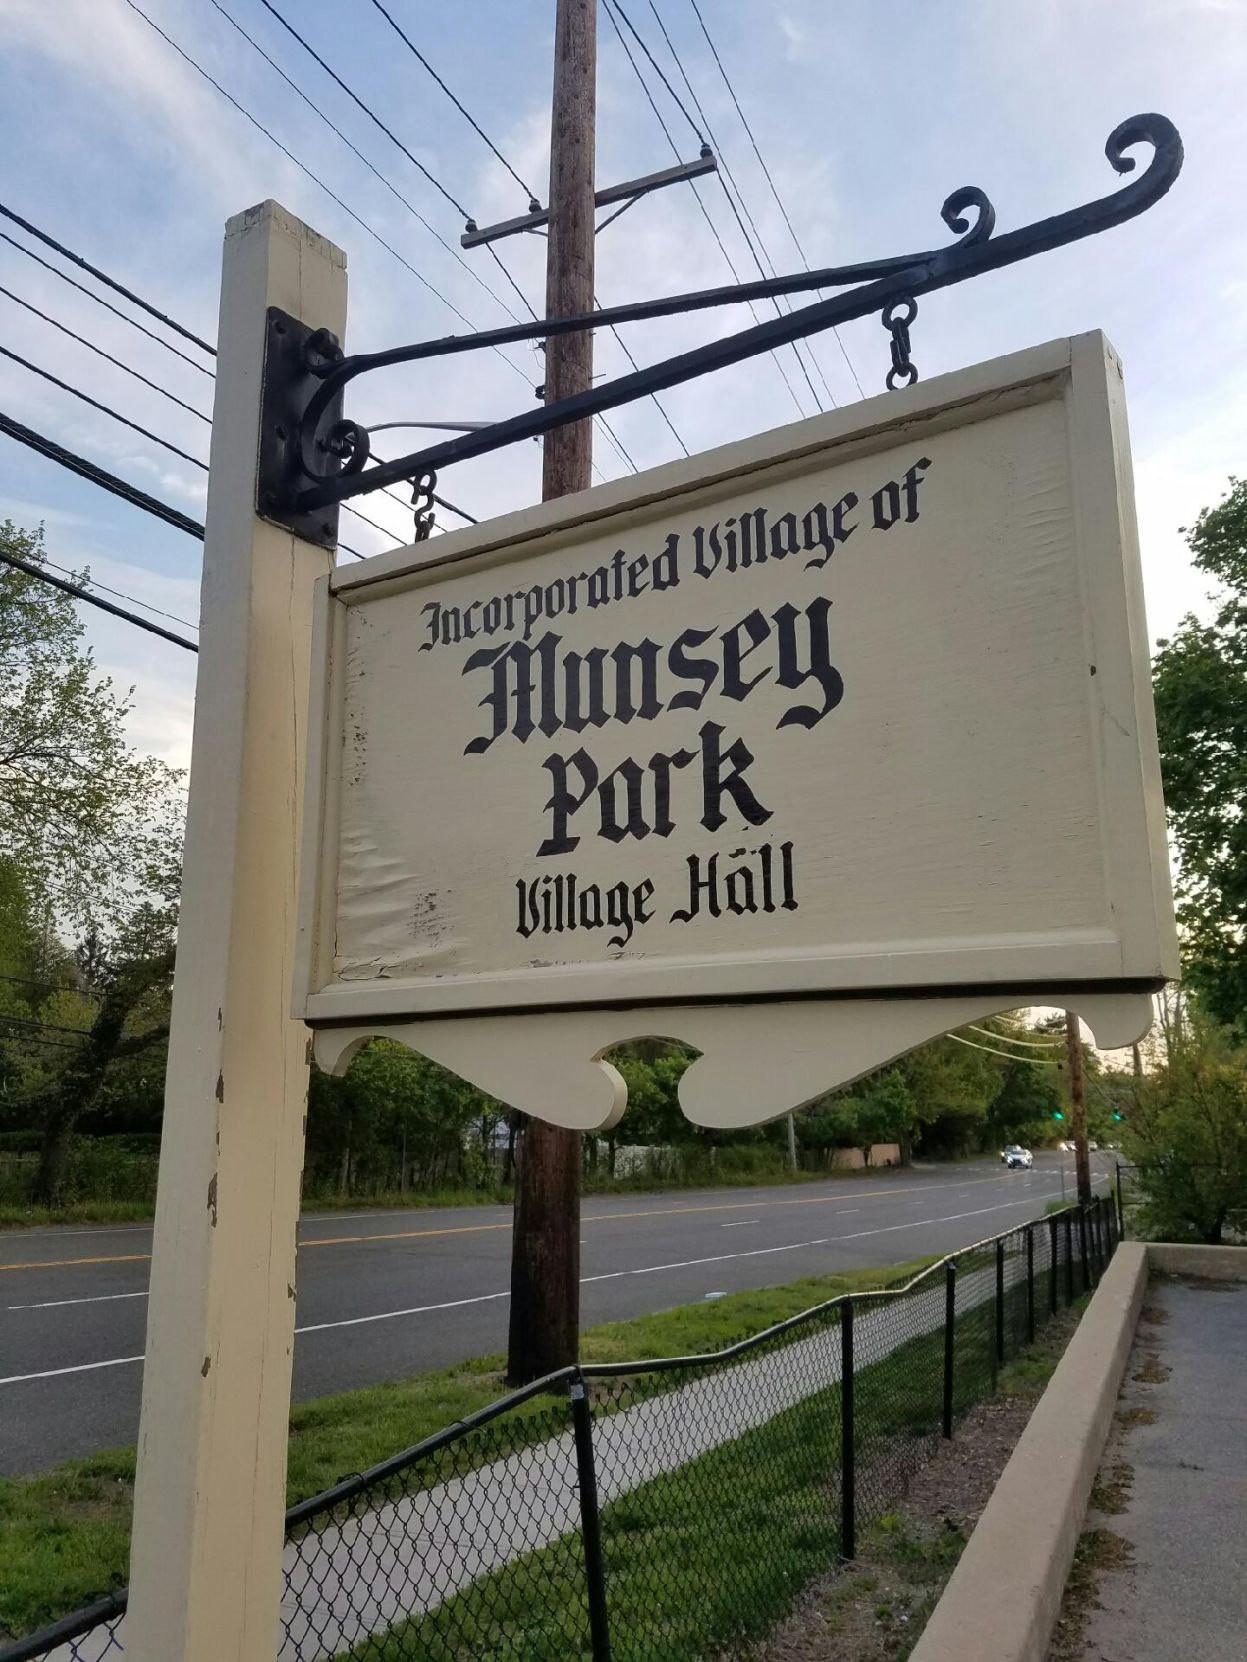 Munsey Park avoids new cell box and related lawsuit